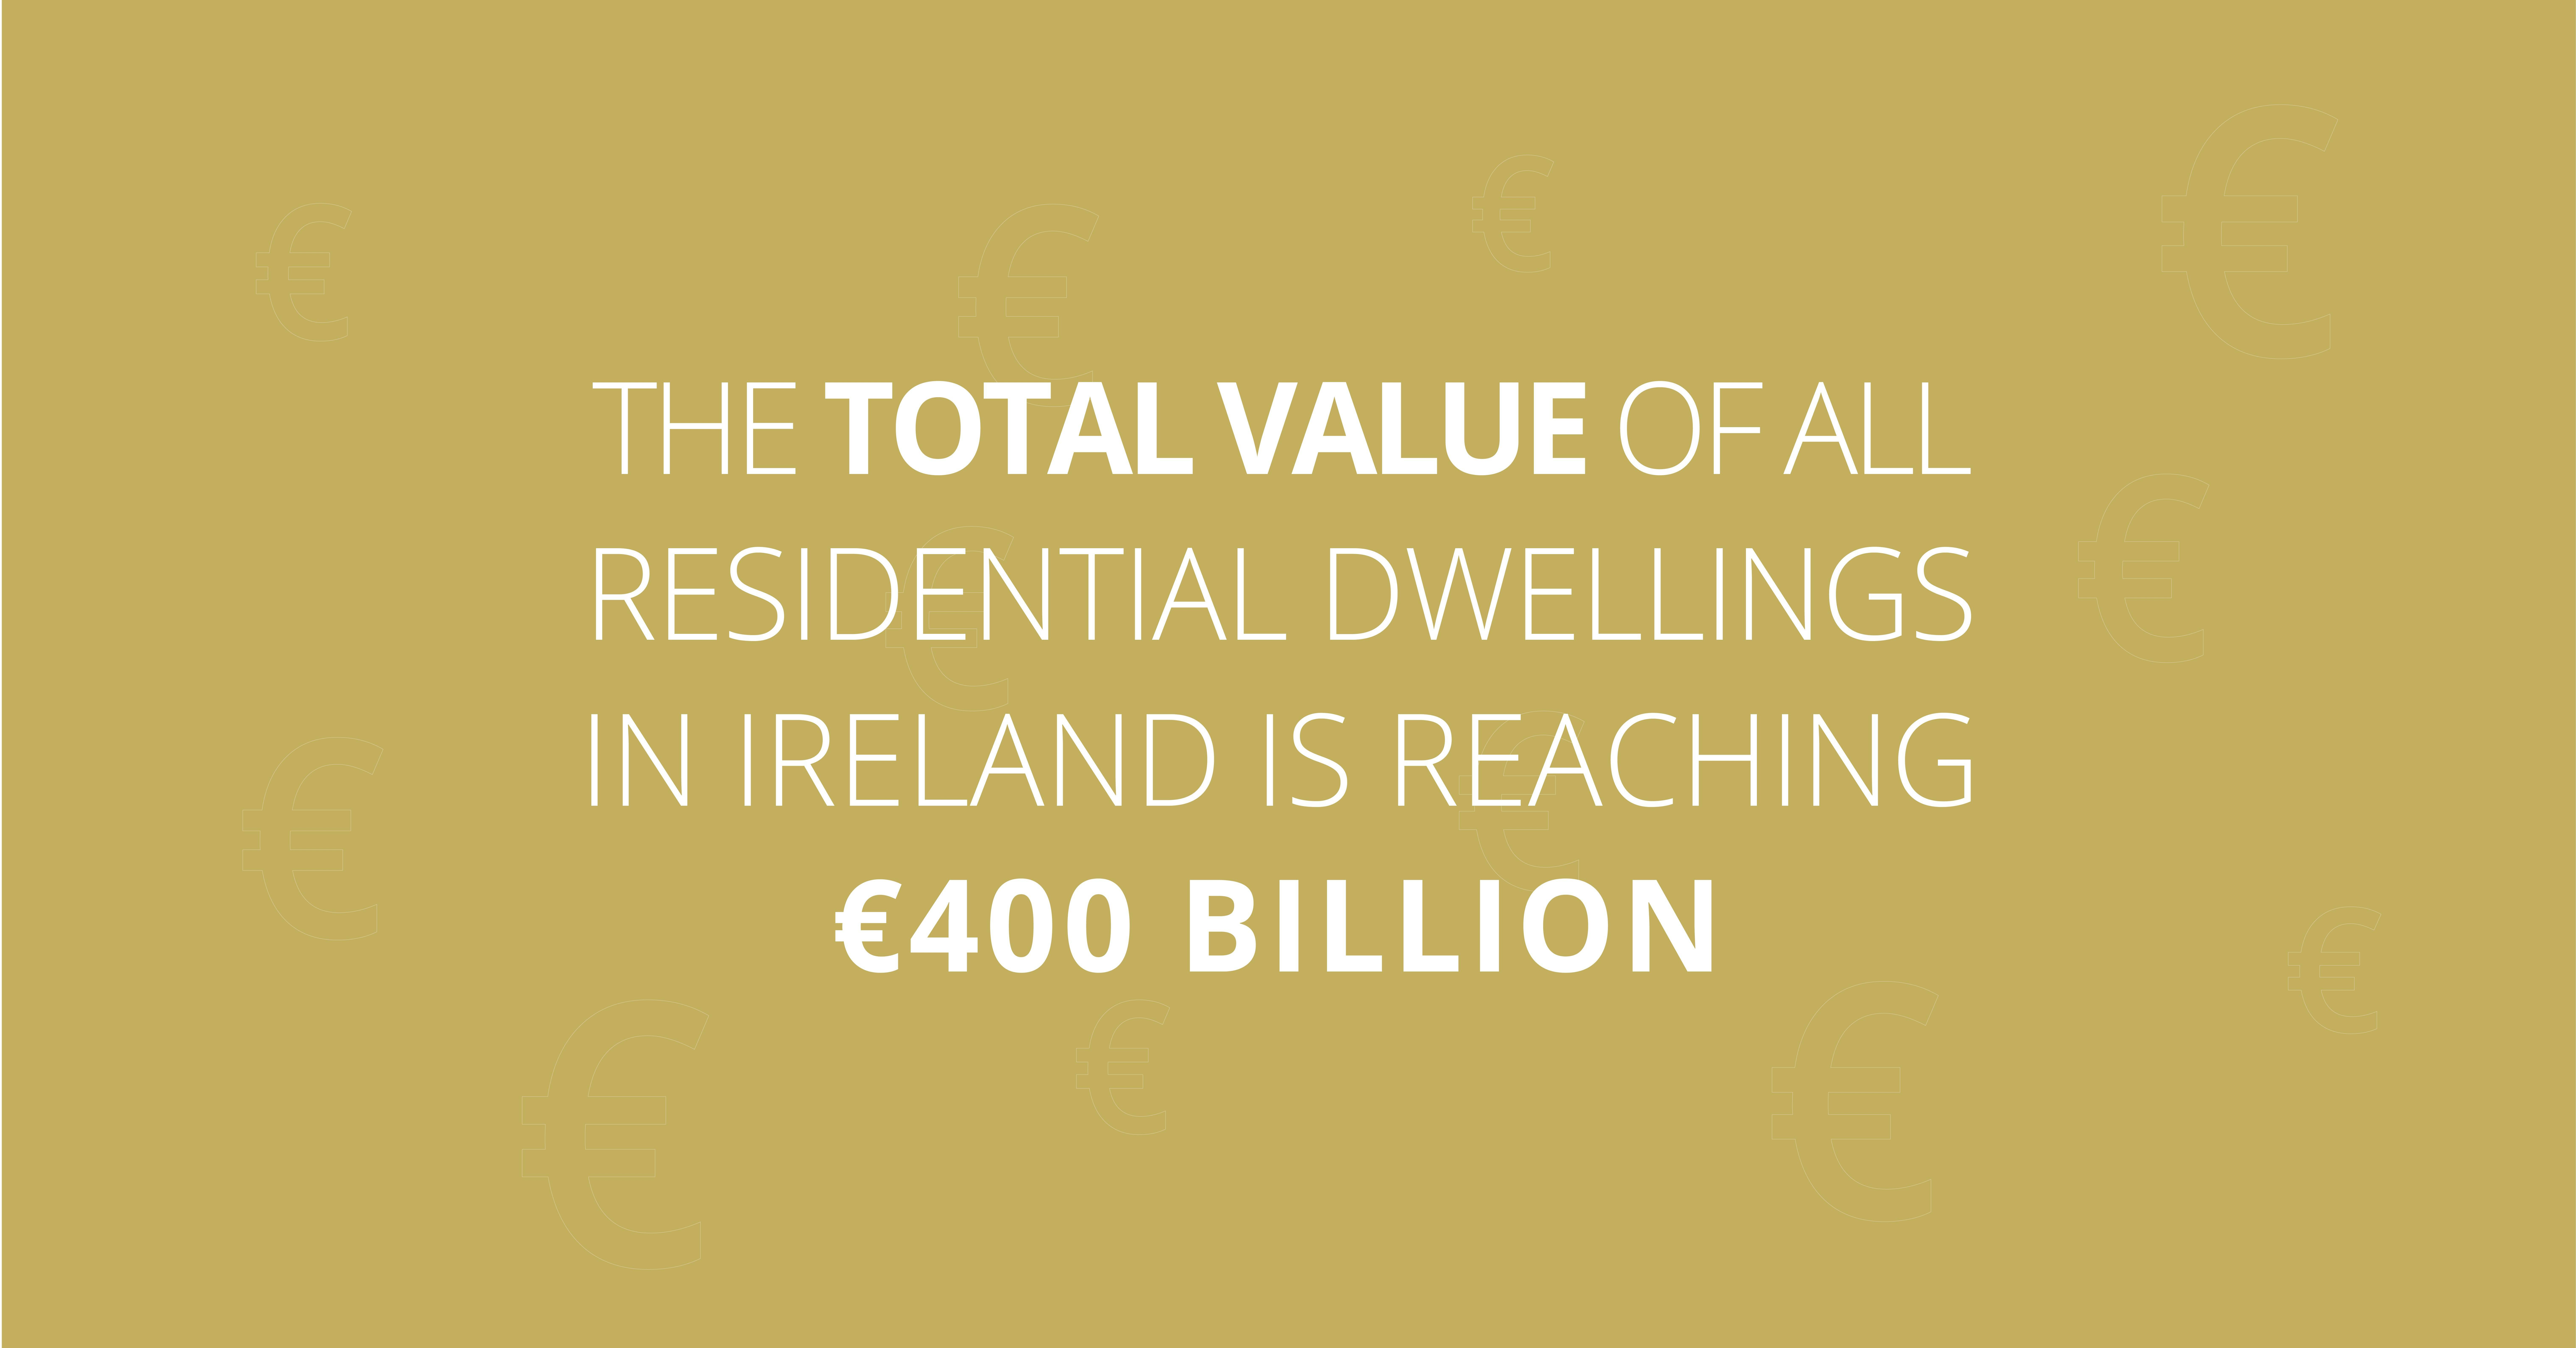 Total value of all residential dwellings in Ireland